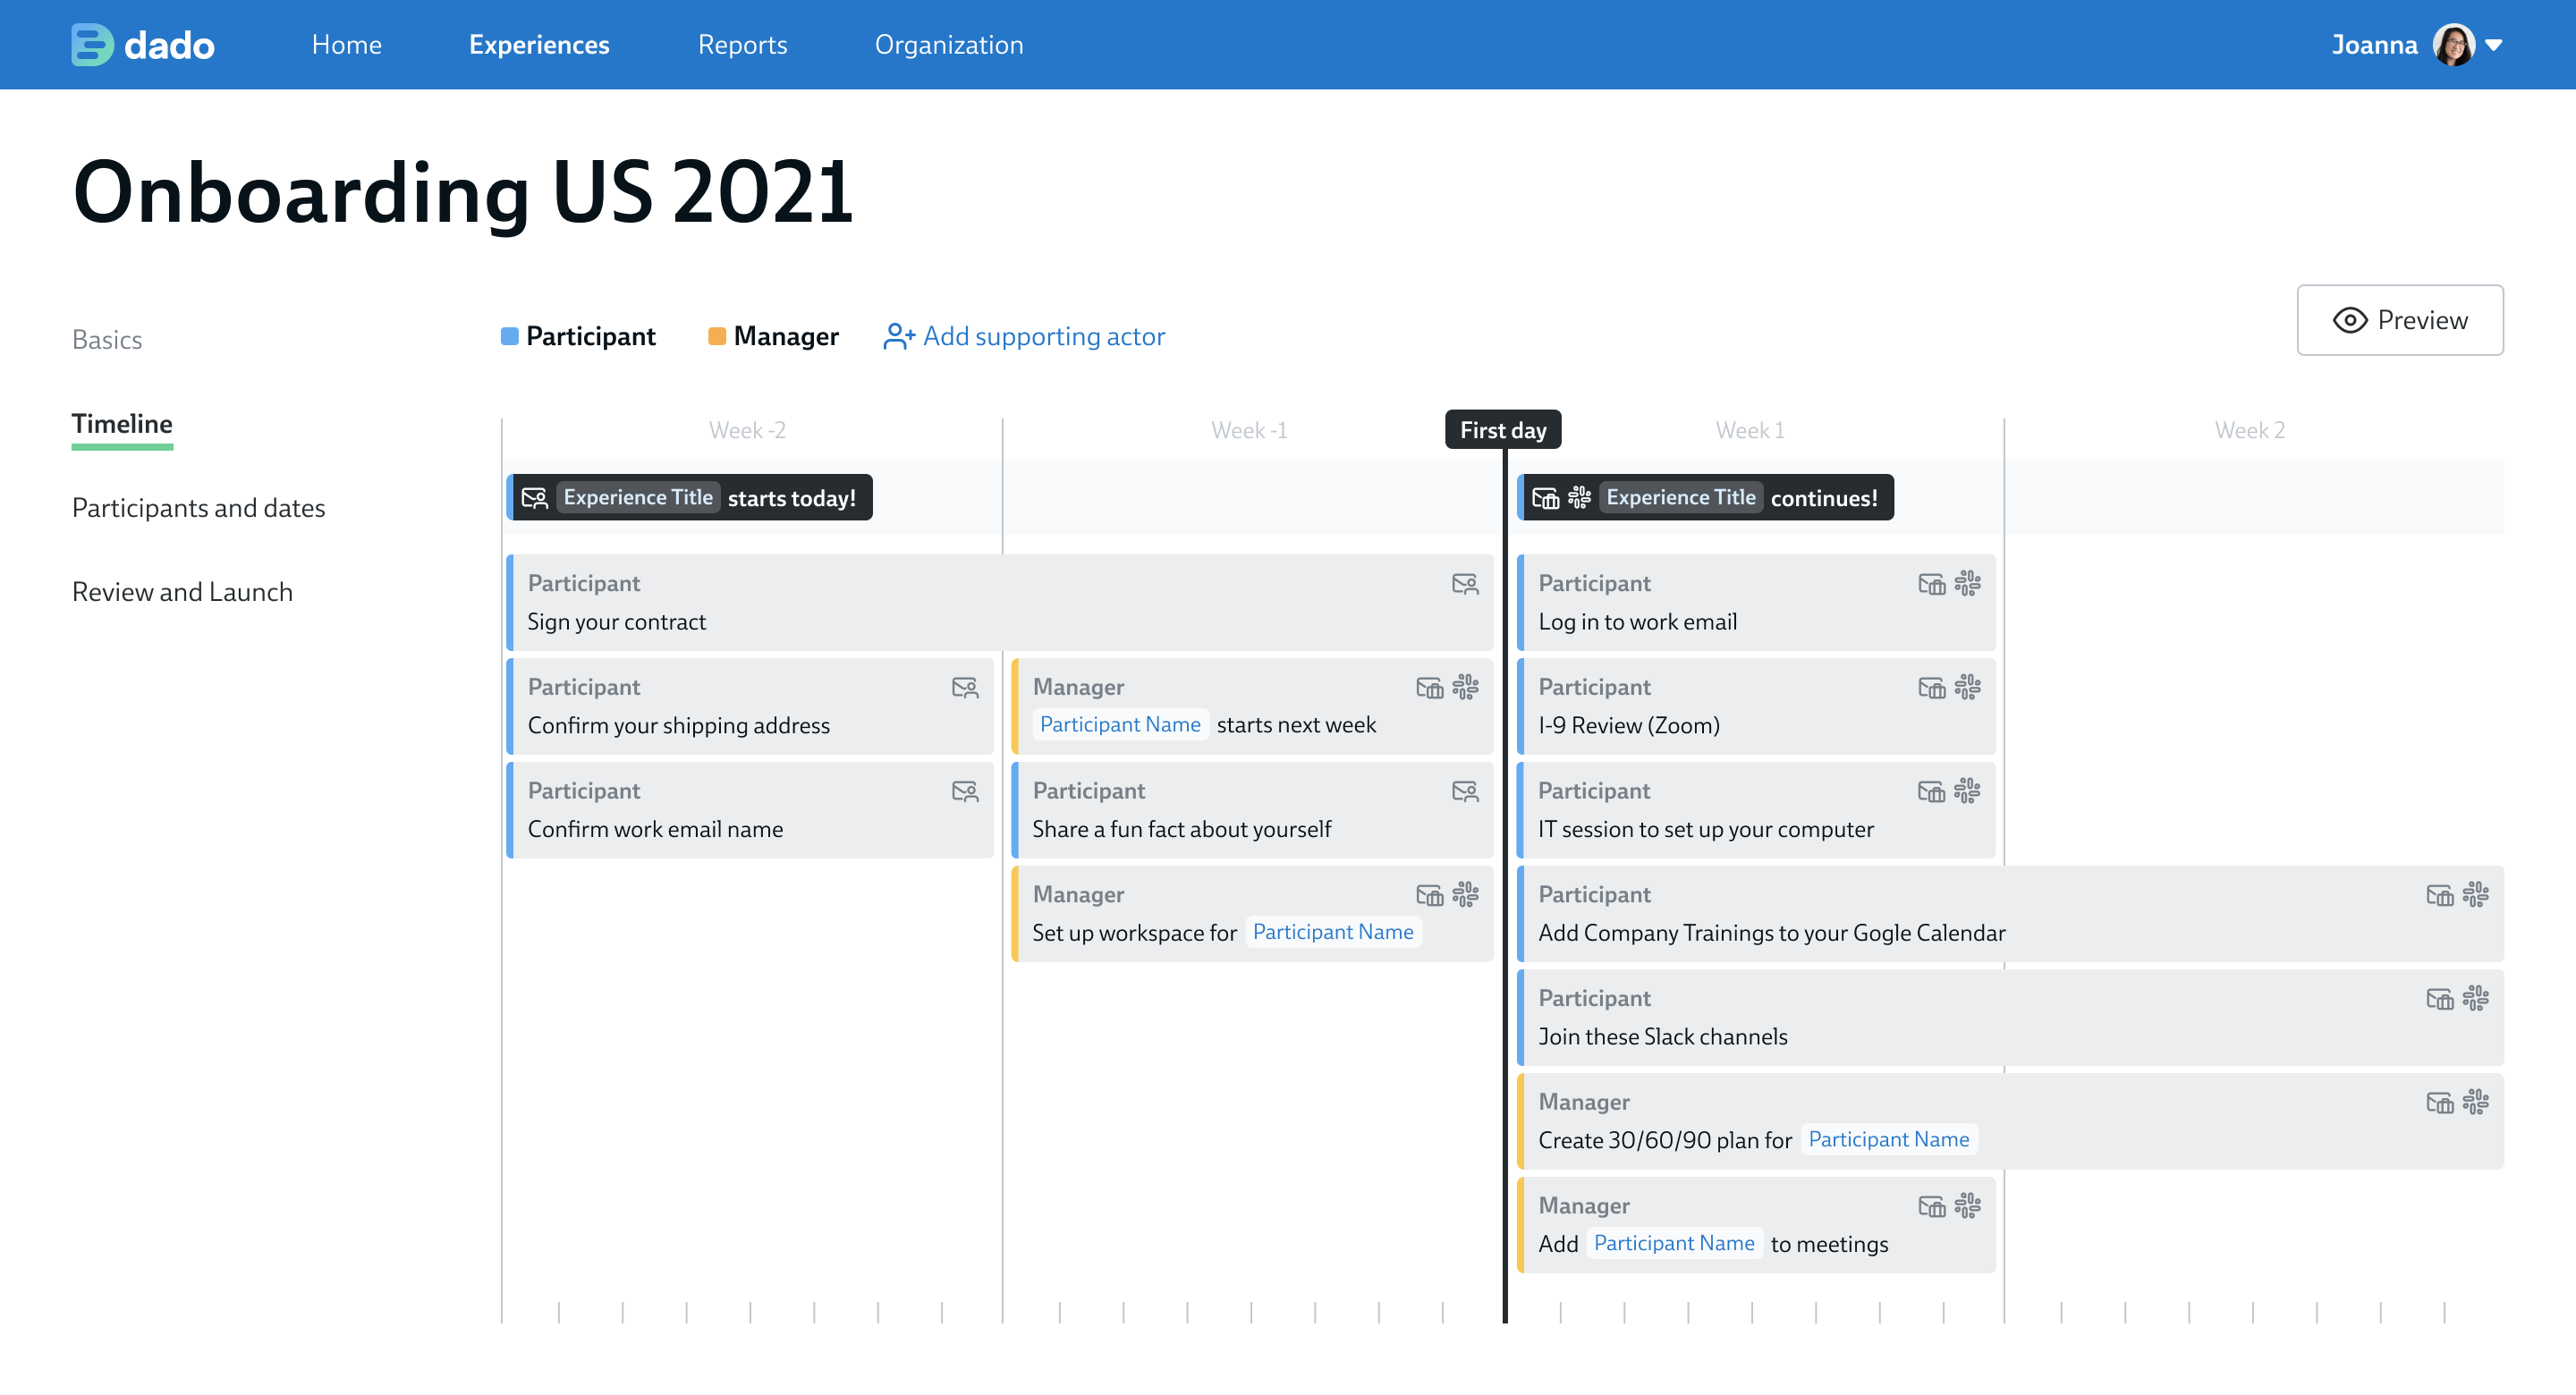 A screenshot of the Timeline feature in Dado